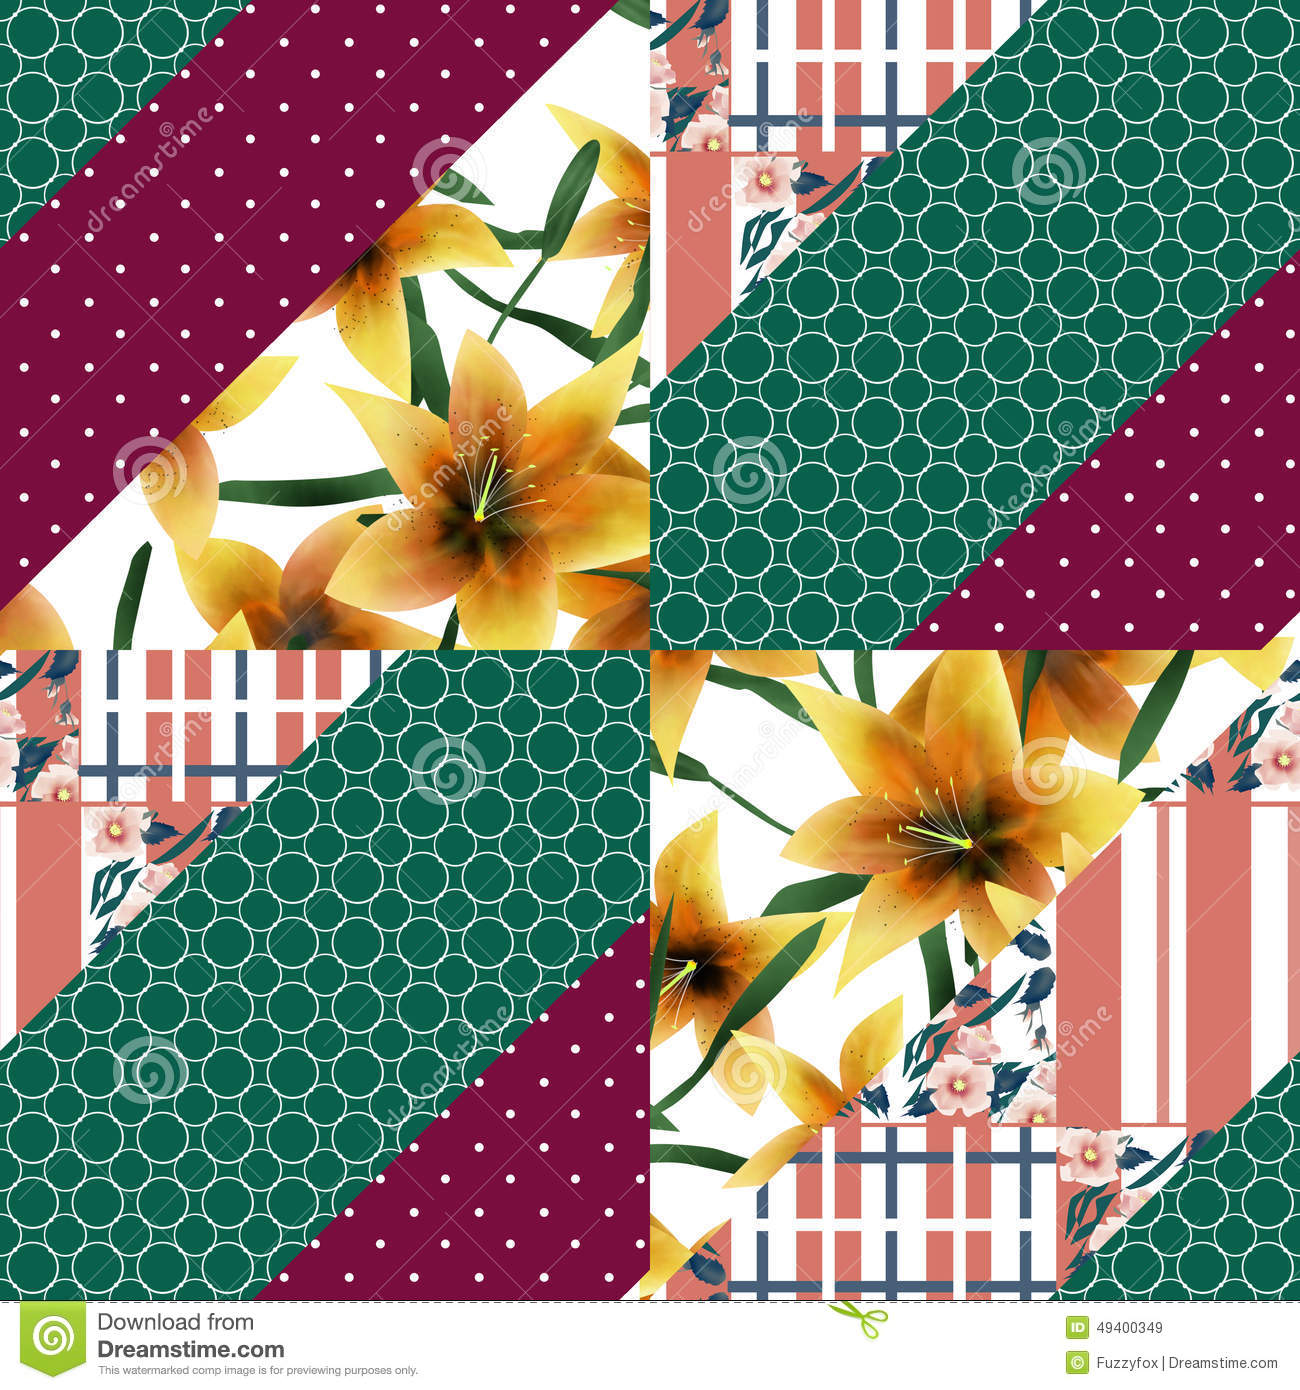 Download Muster-Beschaffenheit Backgroun Der Patchworknahtloses Blumenorange Lilly Stock Abbildung - Illustration von dekor, gewebe: 49400349